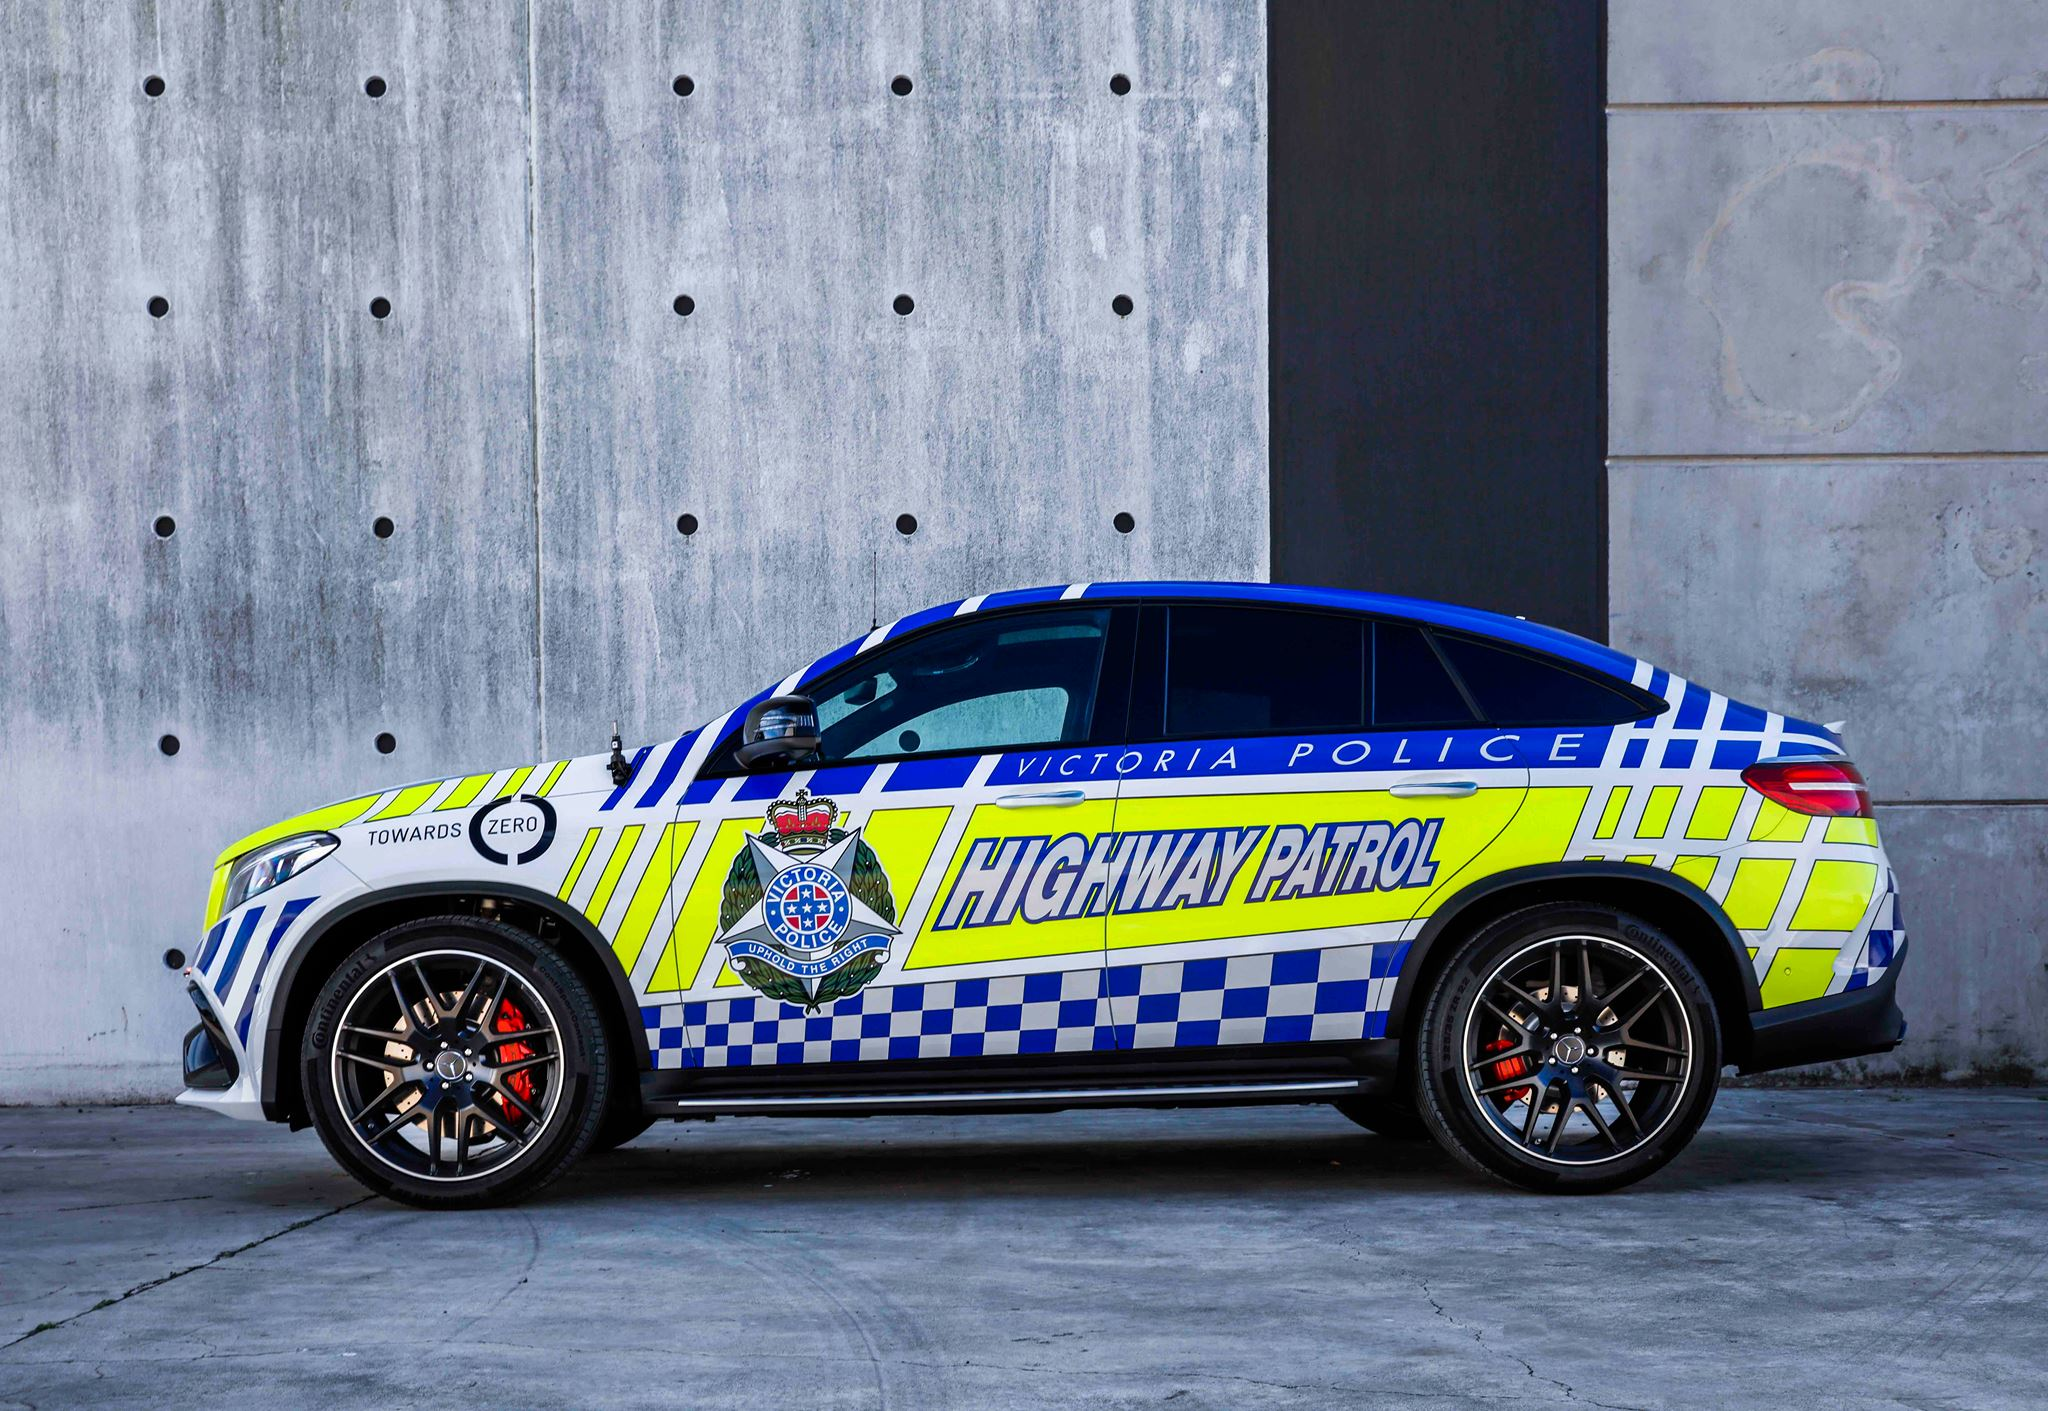 Mercedes Benz Australia Joins Forces With Victoria Police